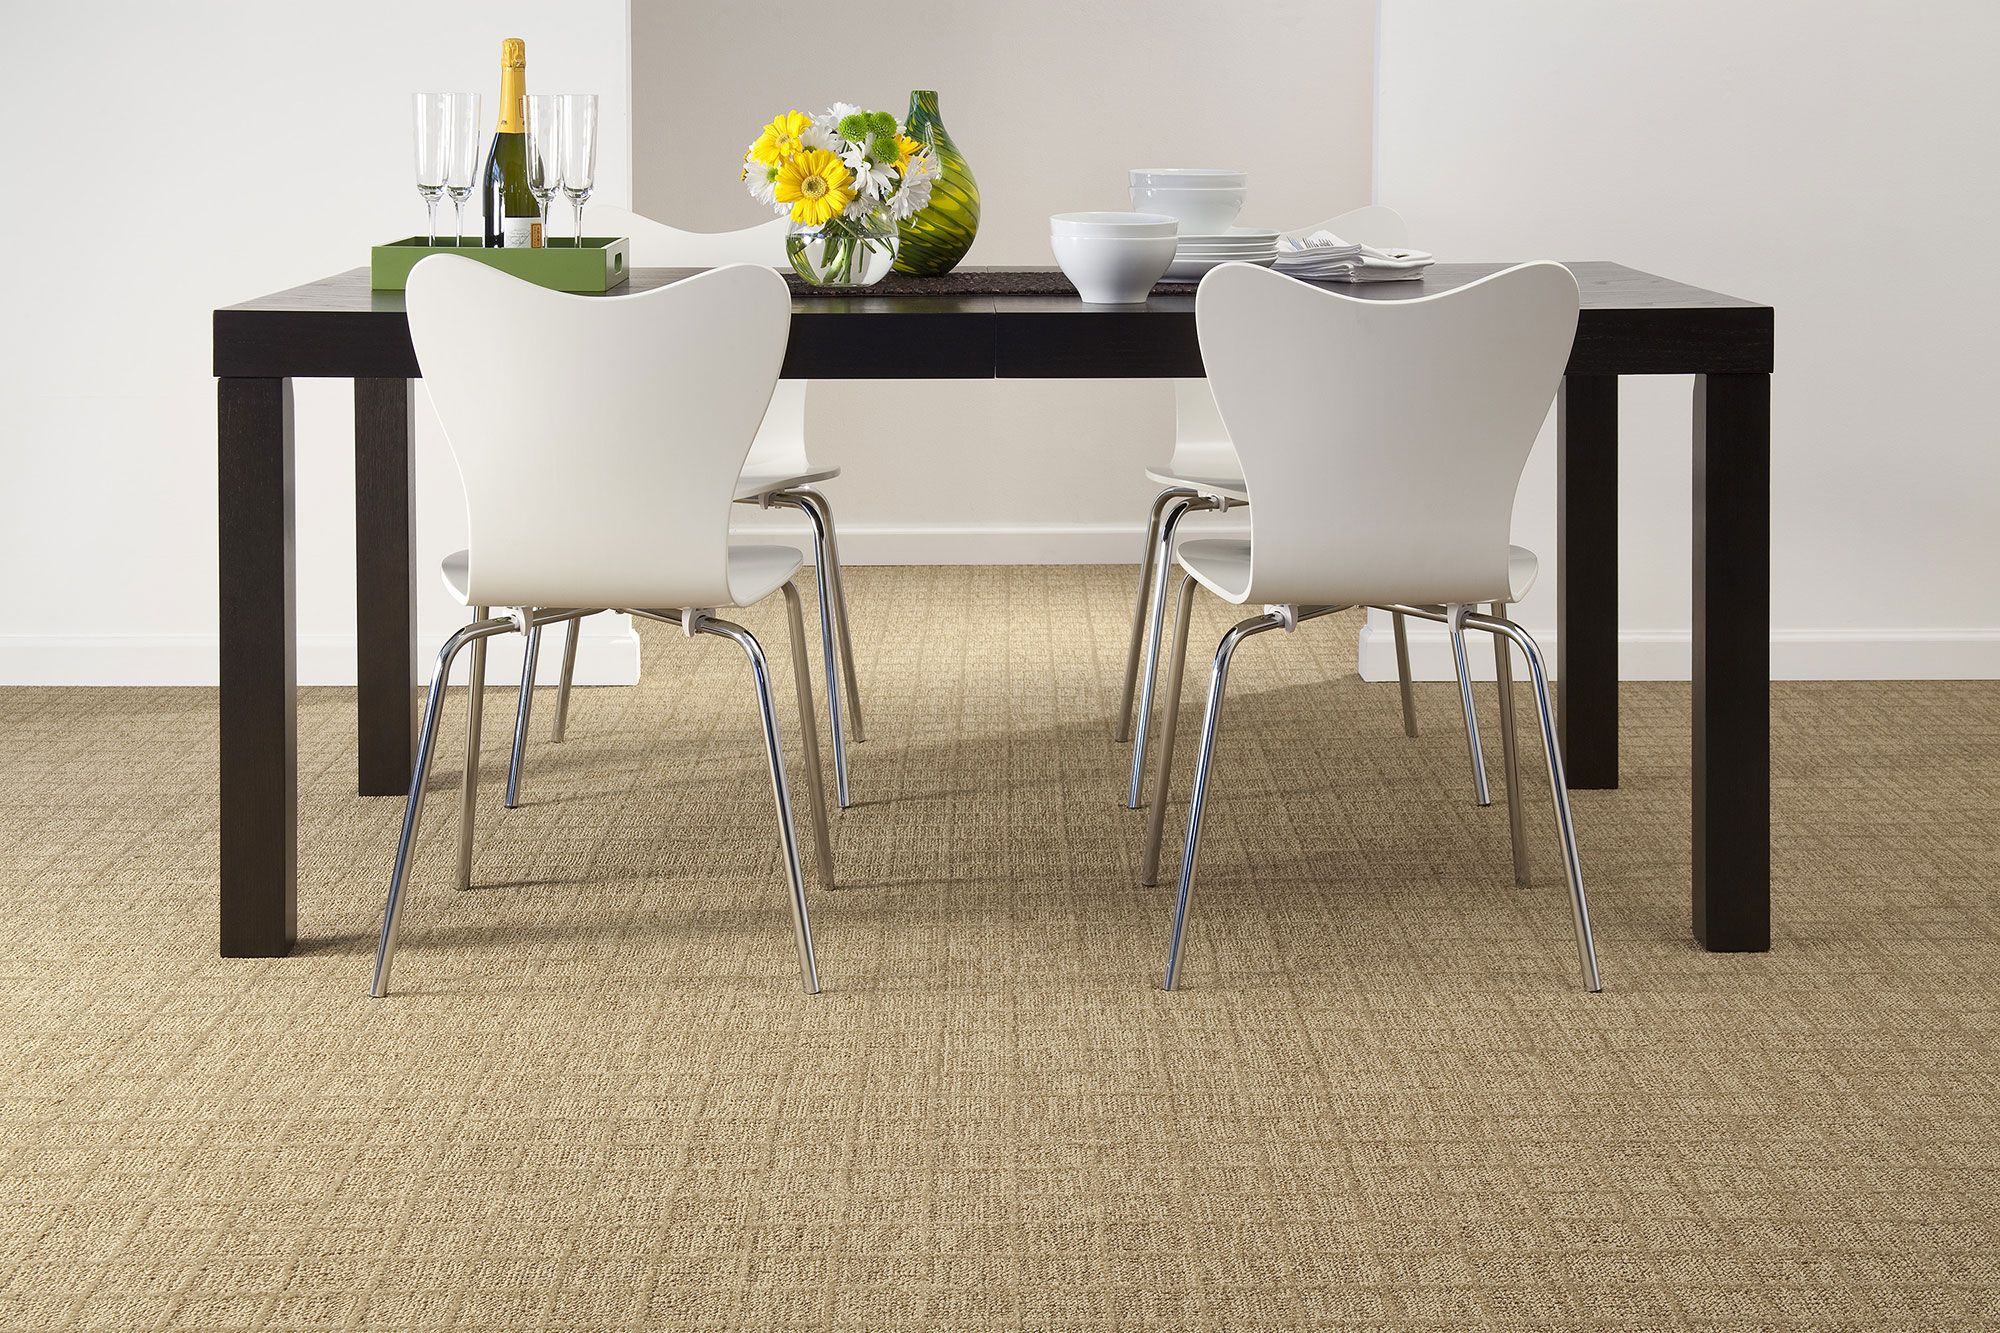 organic texture patterned carpet | dining room ideas | neutral